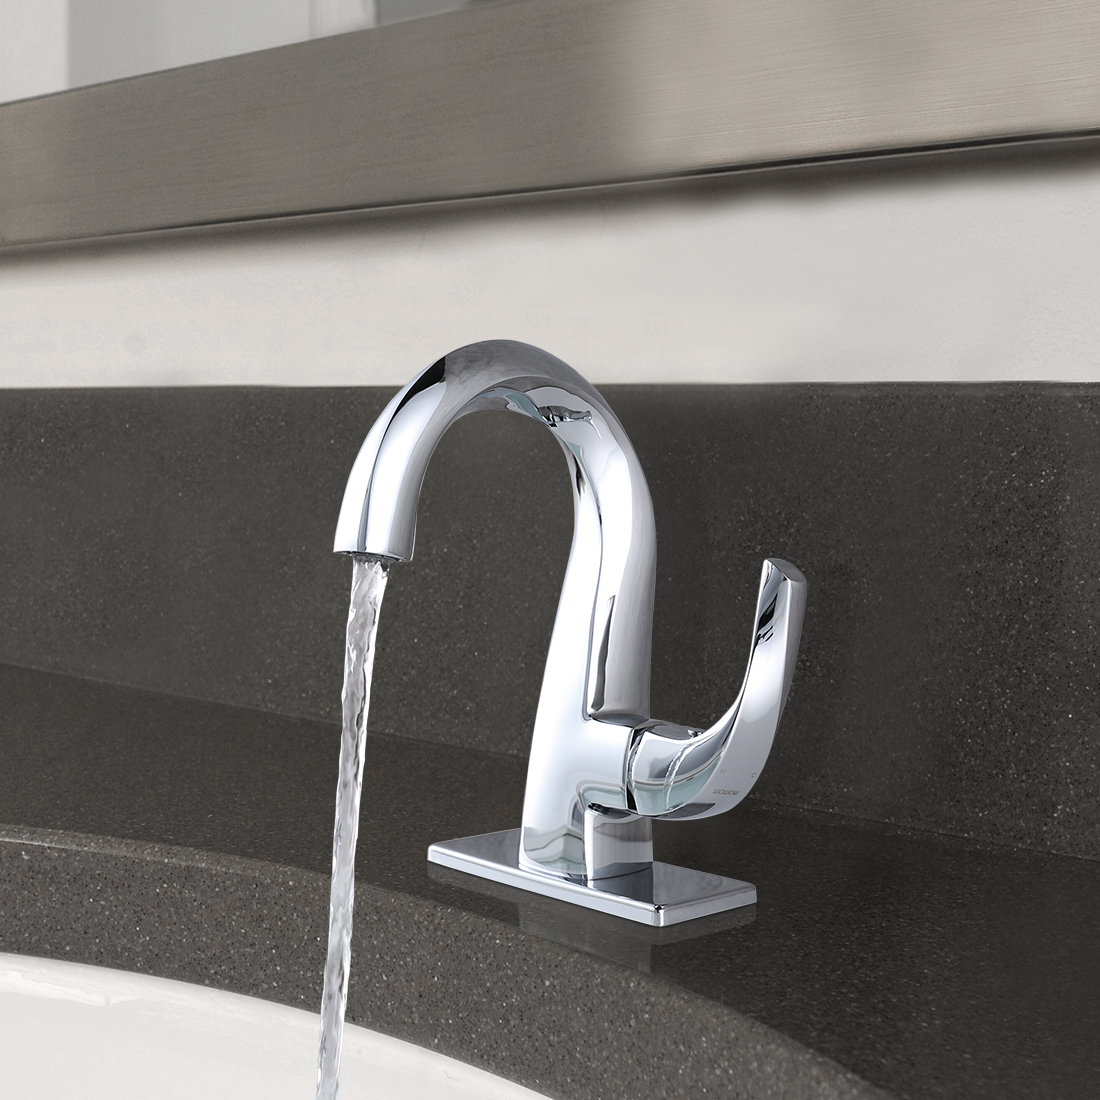 Multifunctional bathroom products become the new favorite of the market